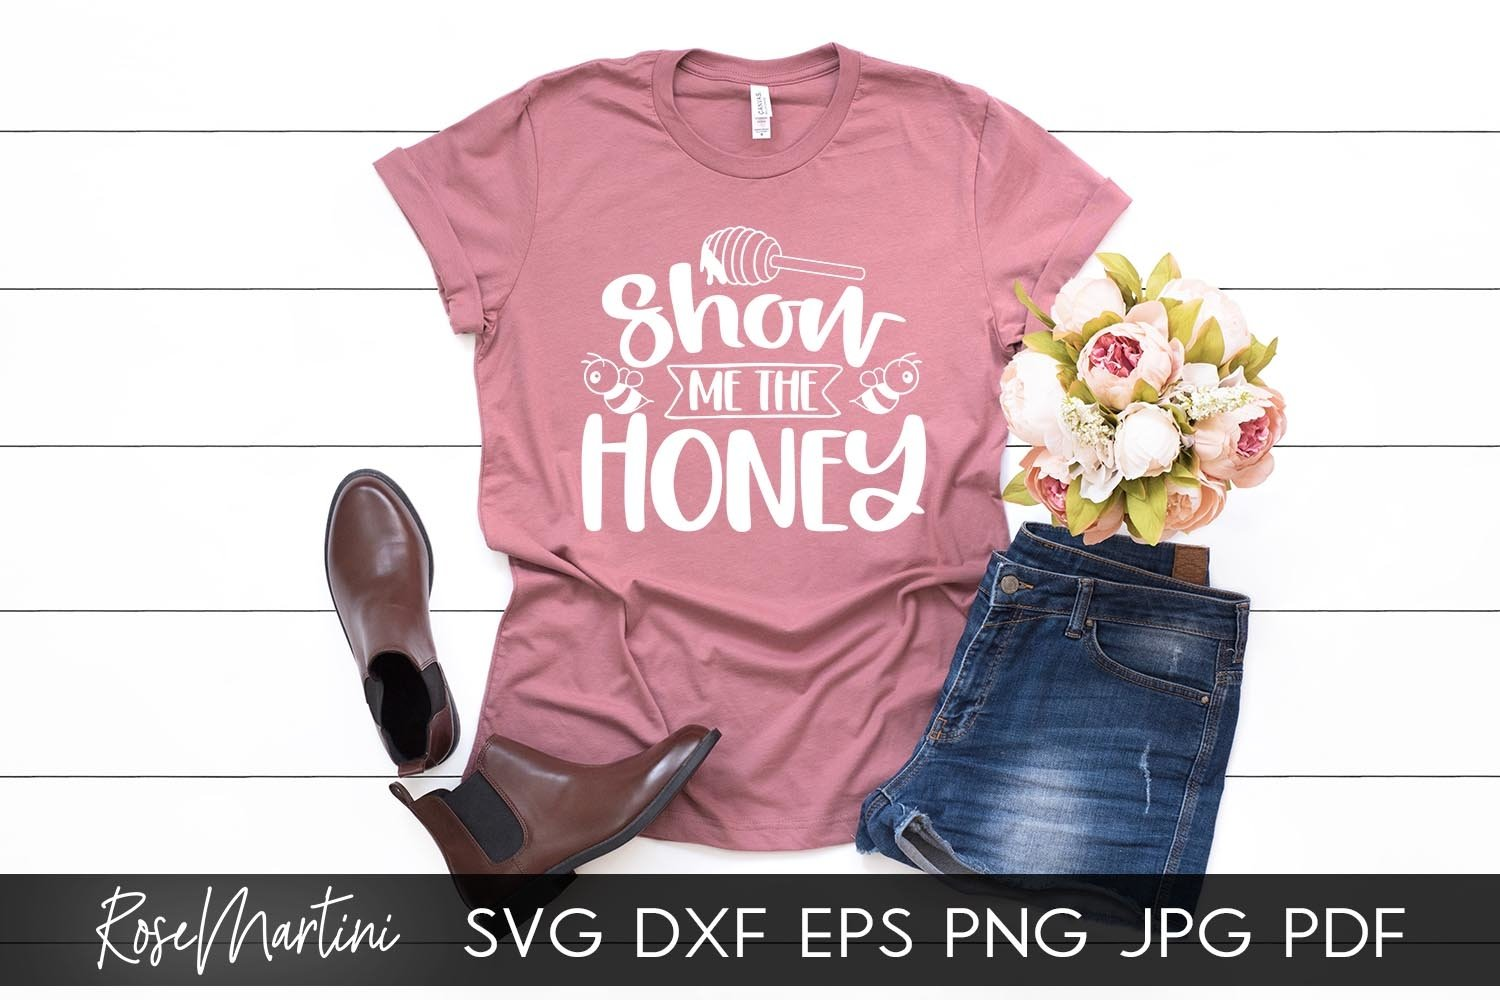 Show Me The Honey SVG Queen Bee SVG Bee Pun Bumble Bee SVG example image 4